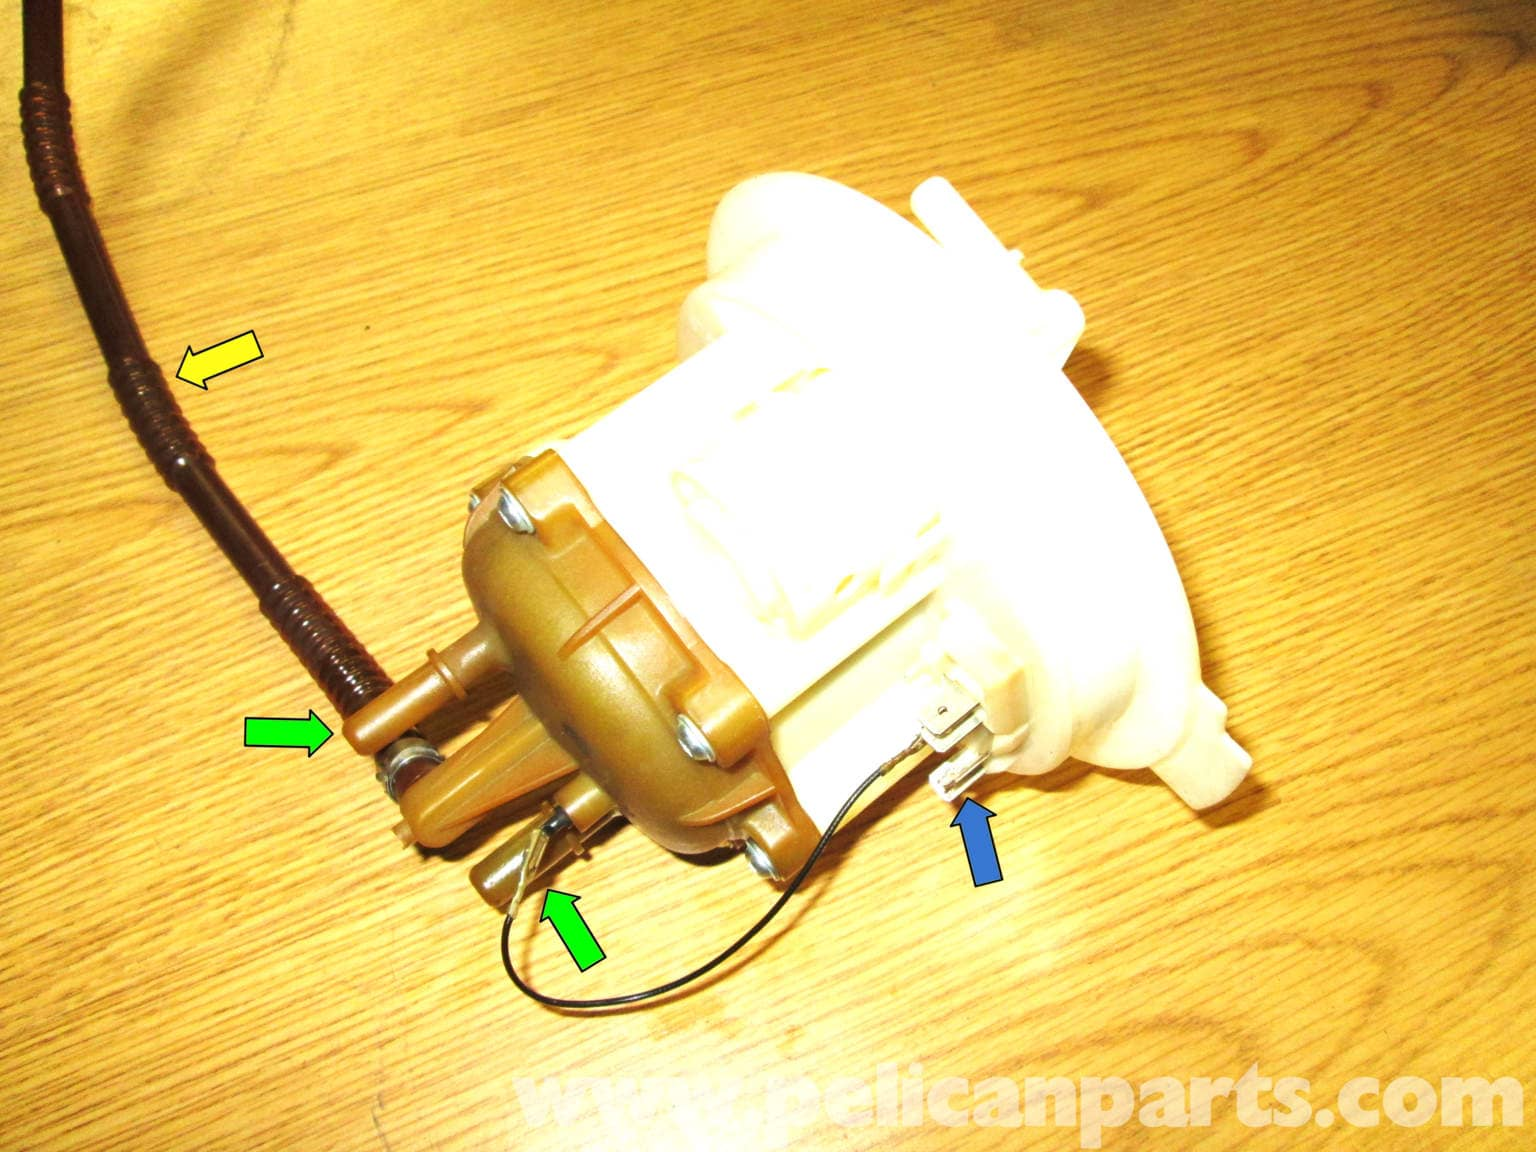 Porsche Cayenne Fuel Pump and Filter Replacement | 2003-2008 ... on fuel injection diagram, fuel injection air cleaner, dodge fuel injection wire harness, fuel injection fuel rails, fuel injection voltage regulator, fuel injection vapor lock, 6.5 diesel glow plug harness, fuel injection harness connector, fuel injection conversion wiring, fuel injection fuel pressure regulator, fuel injection generator, fuel injection control module, fuel injection spark plug, fuel injection gauge, fuel injection fuse, fuel injection throttle cable, fuel injection flow divider, fuel injection systems, fuel injection seat, fuel rail wiring harness,